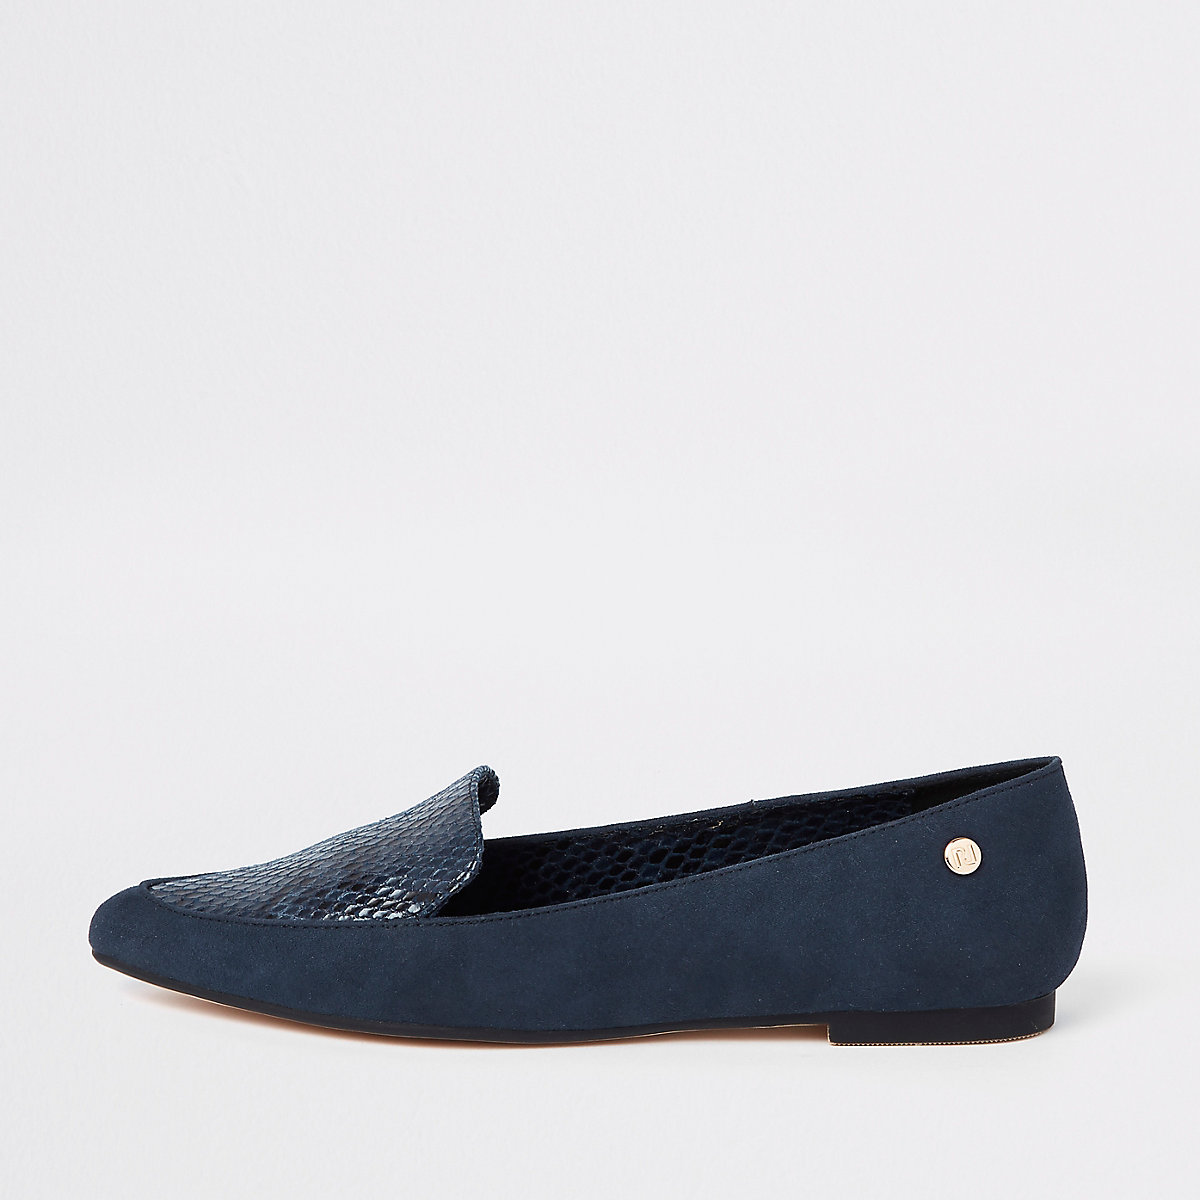 Navy pointed toe loafers